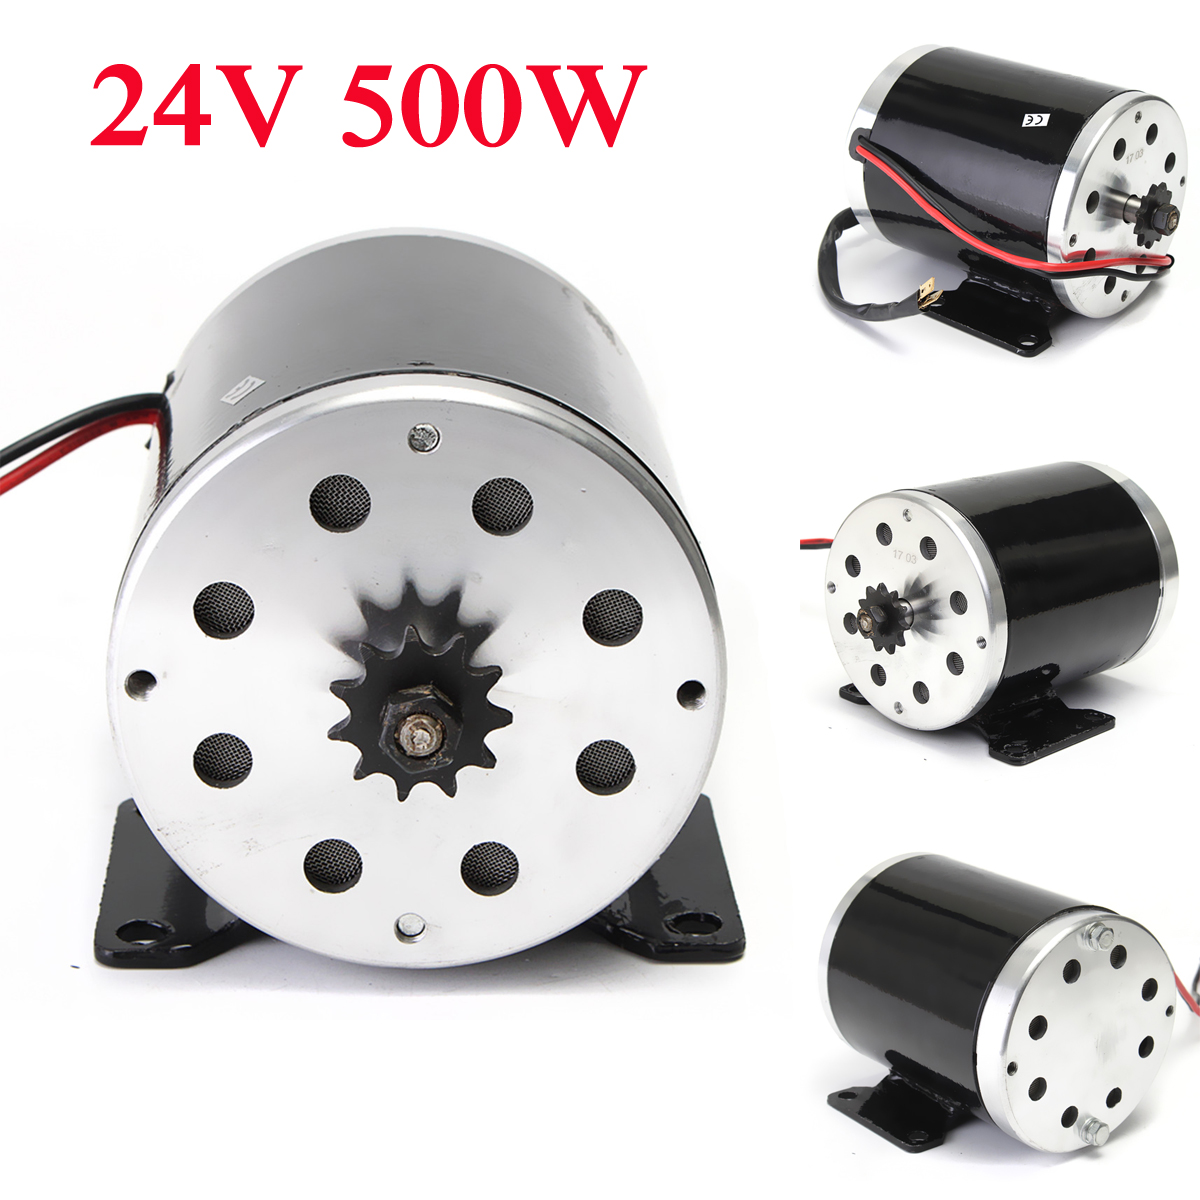 24v 500w 28 5a electric brushed motor 2800rpm w bracket for Abc electric motor repair